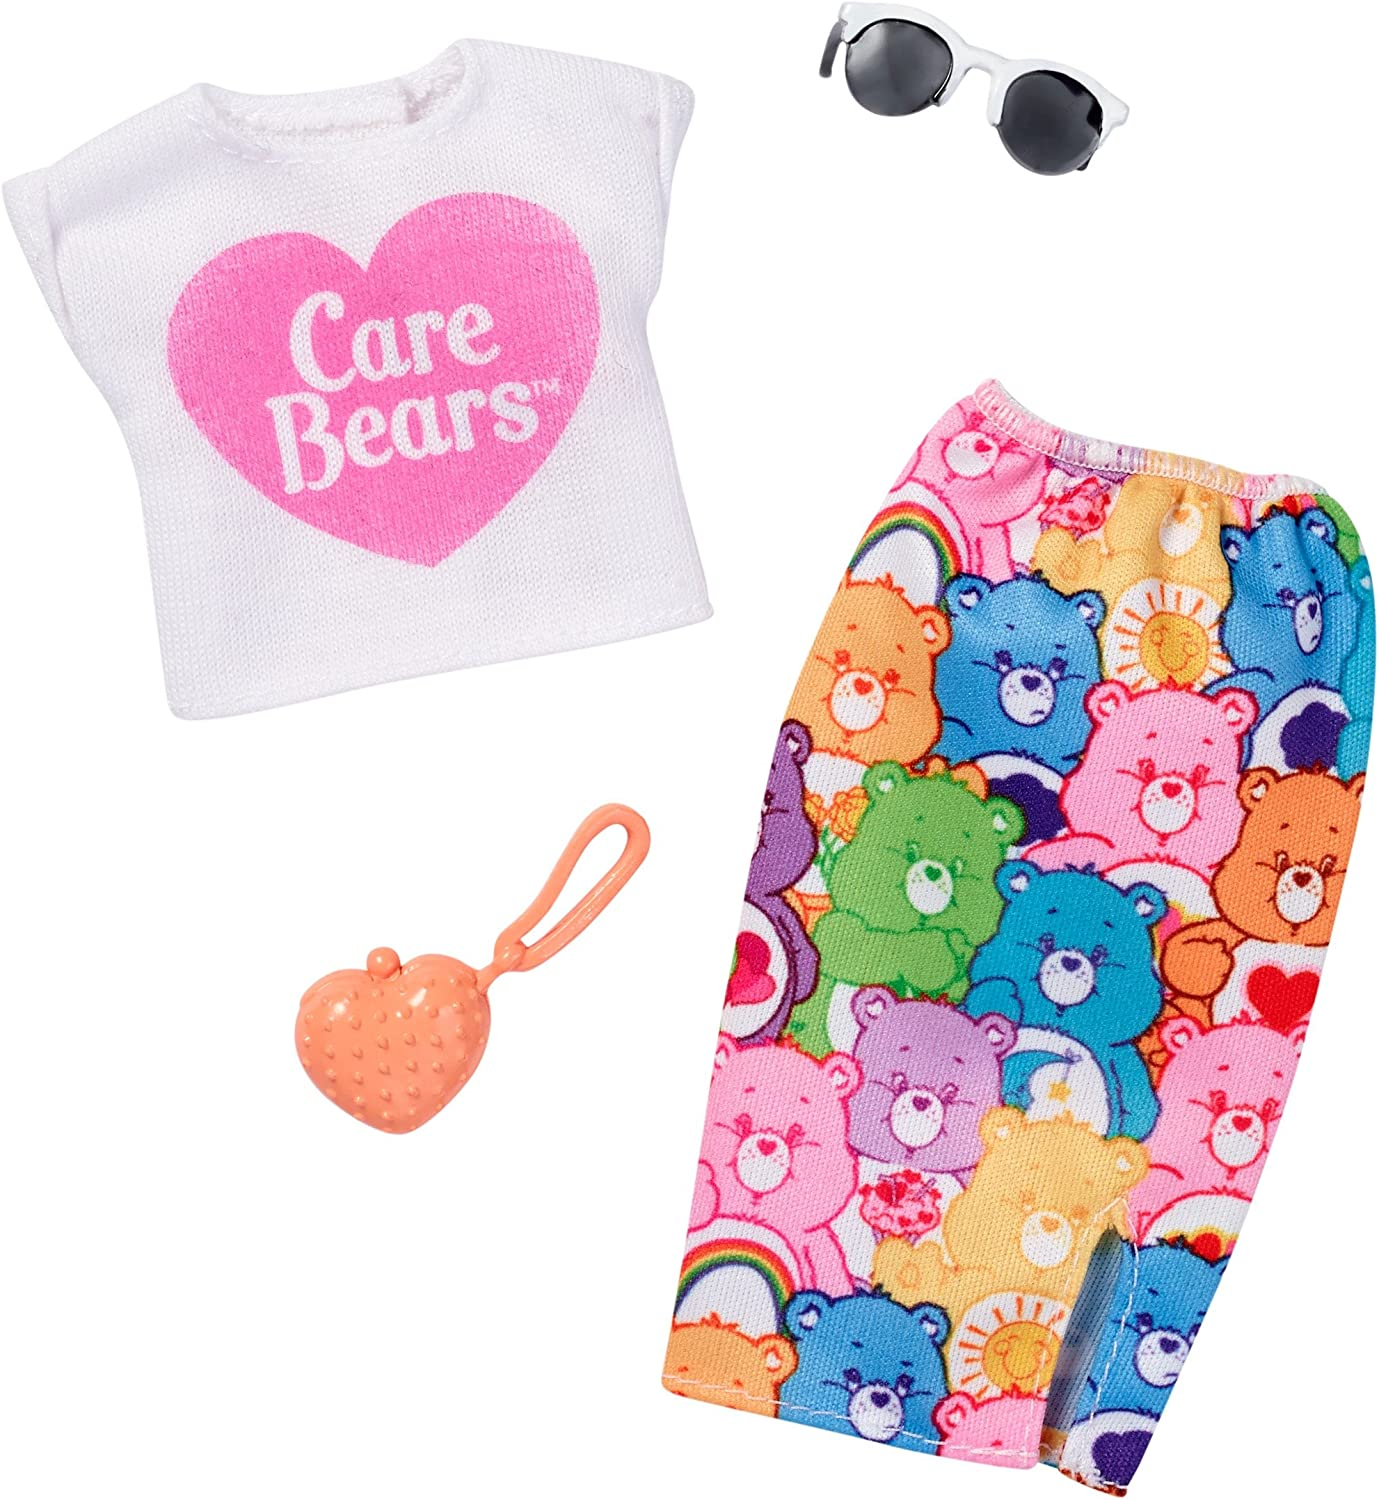 2018 BARBIE CARE BEARS FASHION PACK ~ DRESS PURSE /& NECKLACE NEW